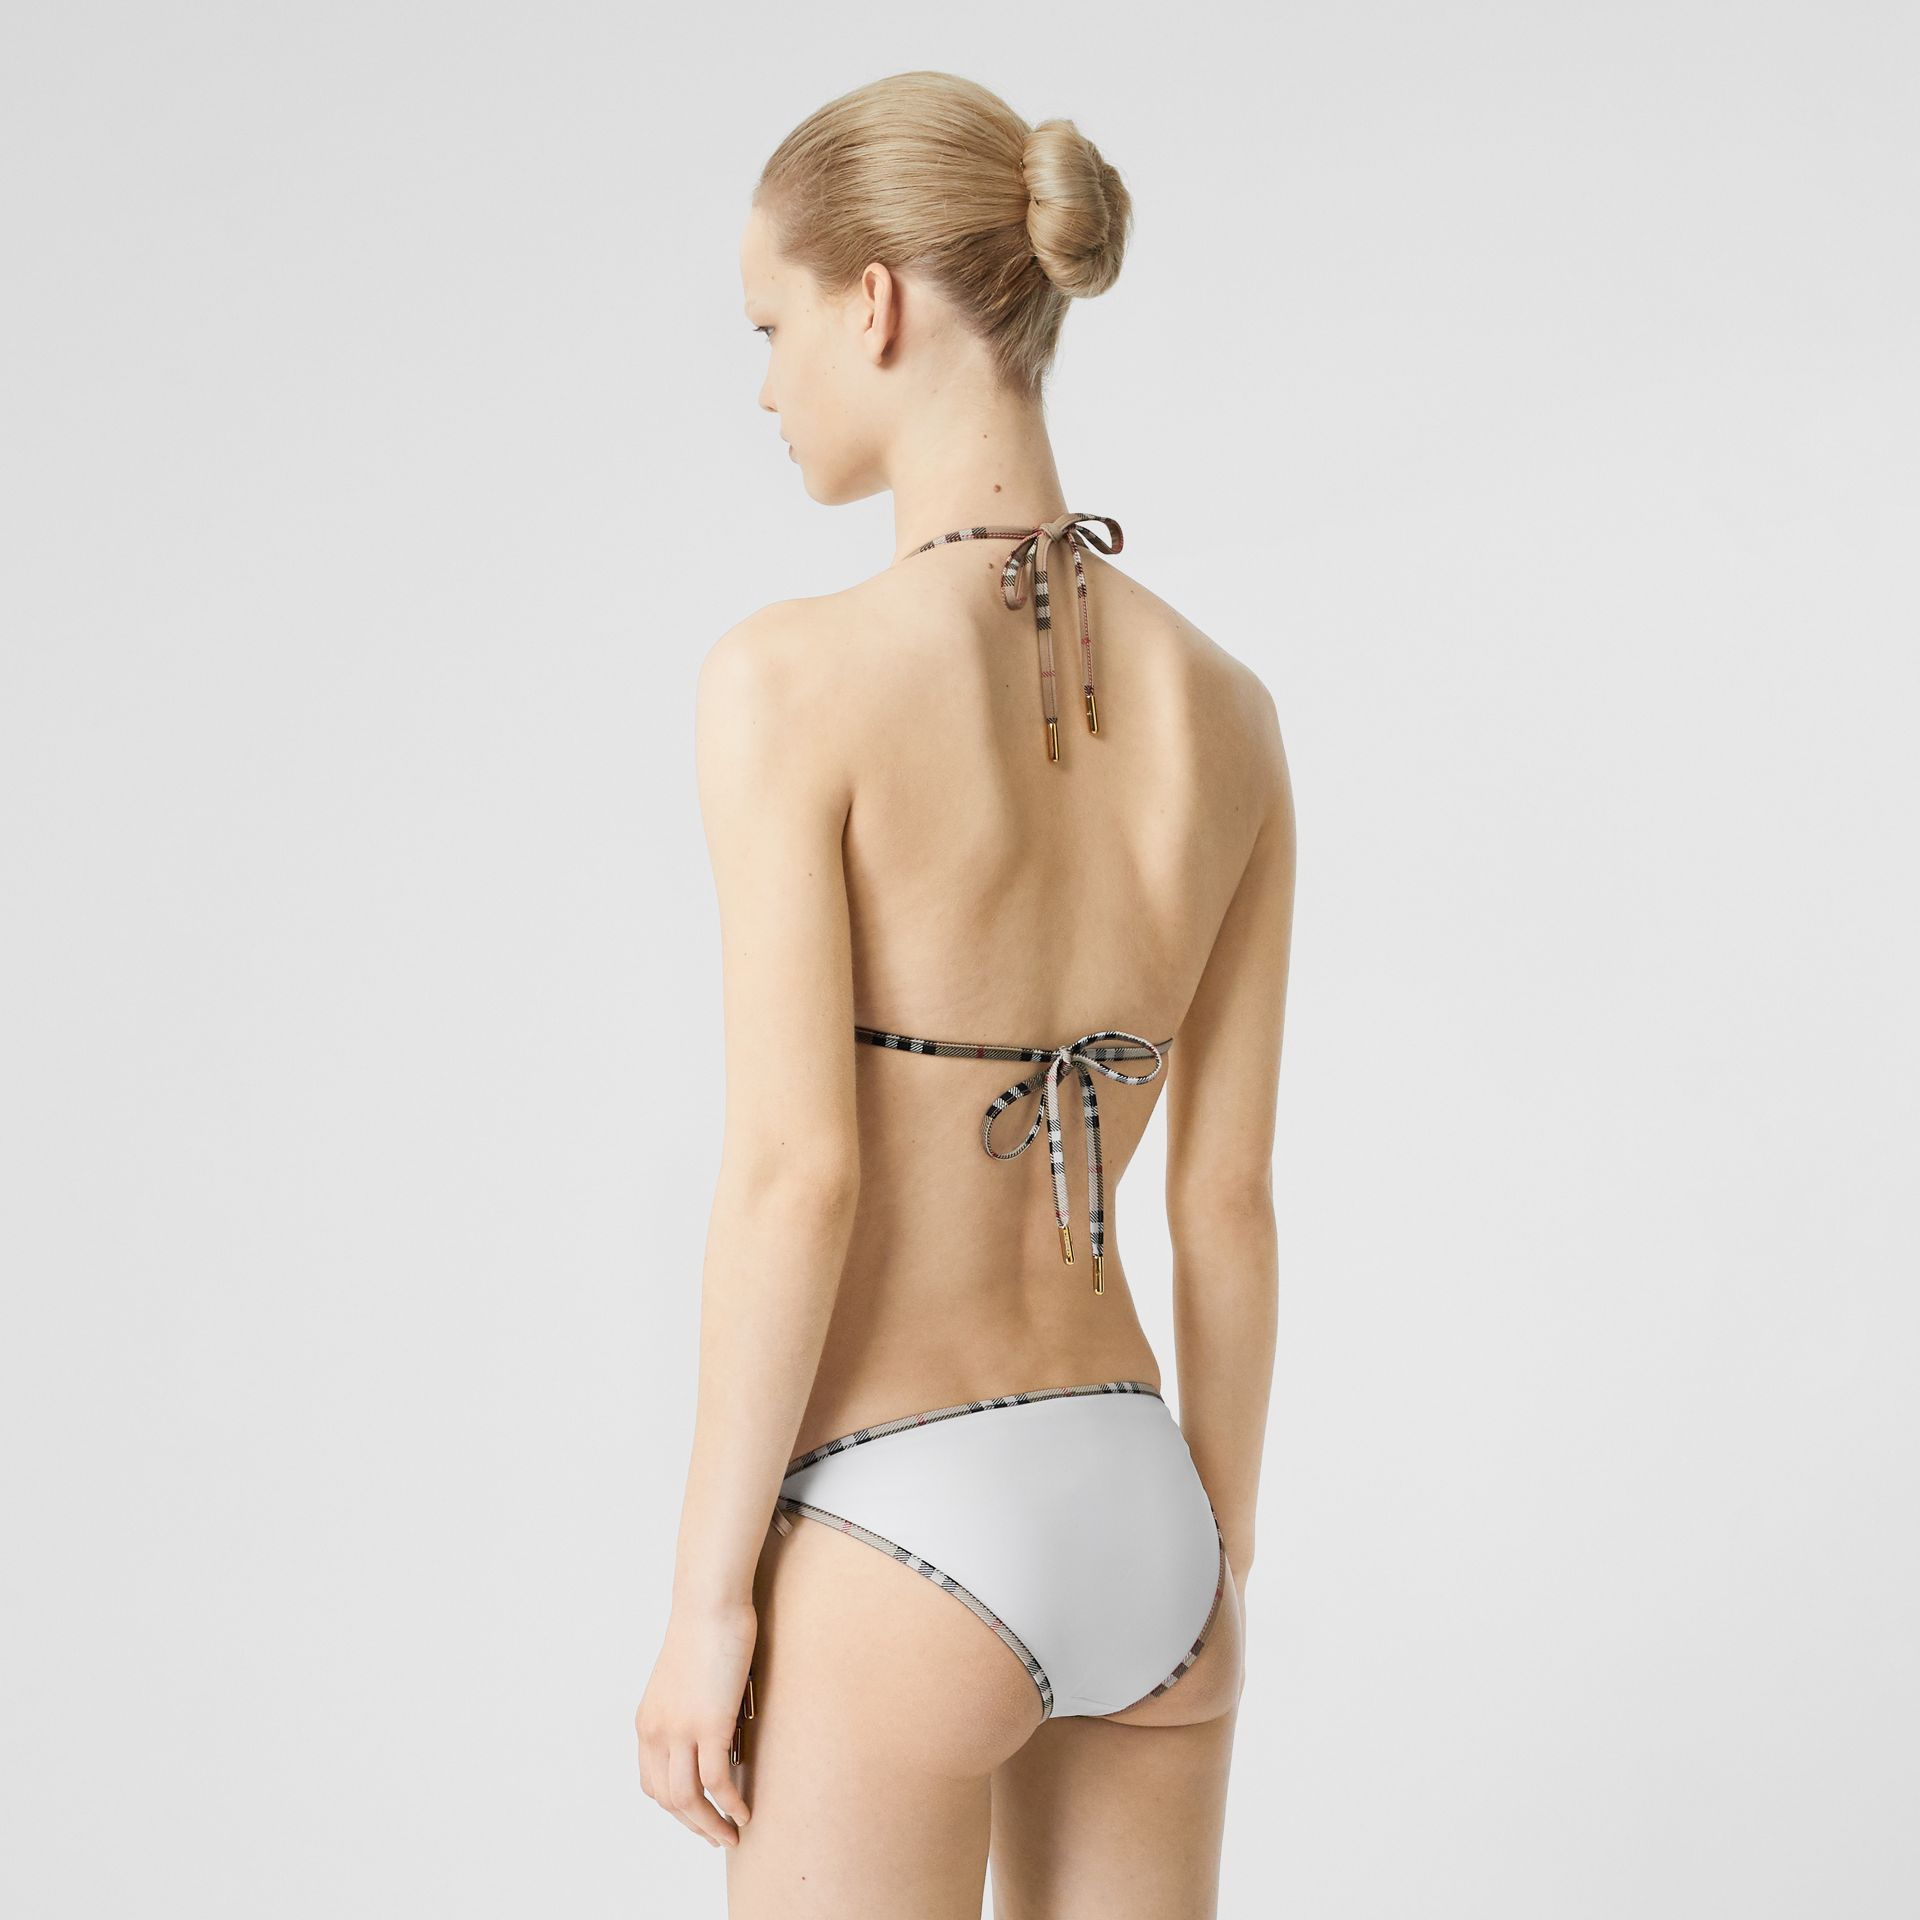 Vintage Check Detail Triangle Bikini in White | Burberry - gallery image 1